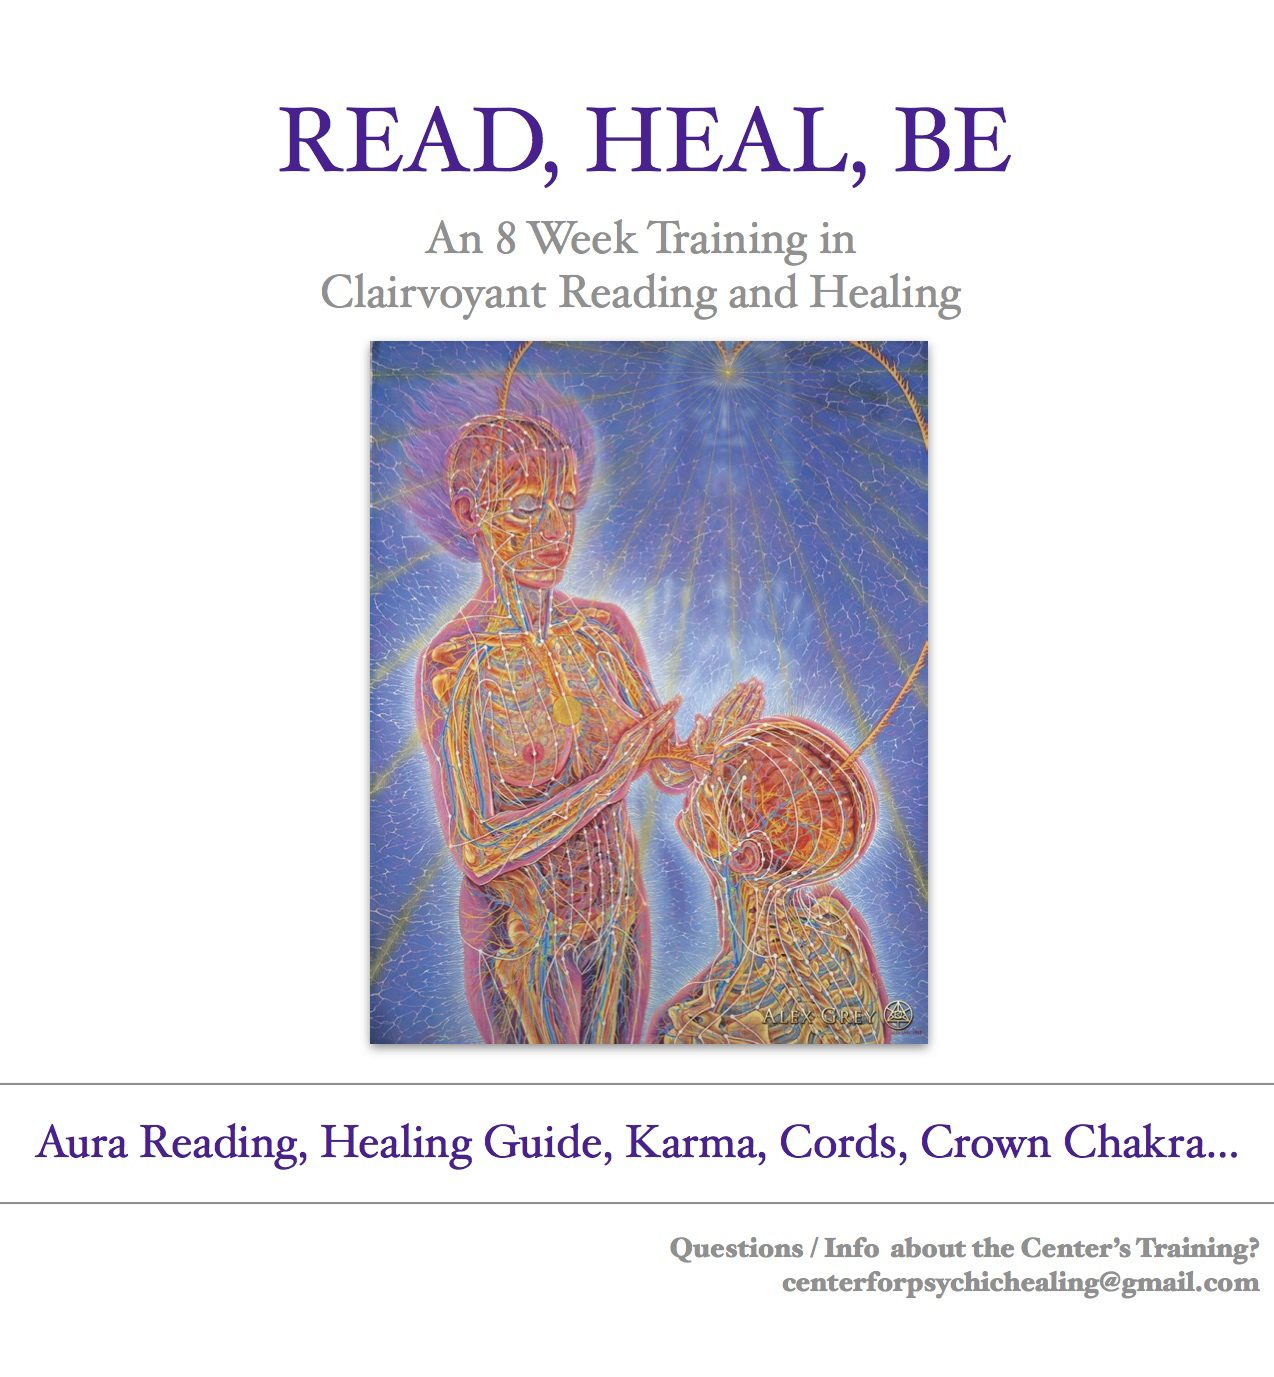 Clairvoyant Reading Training, Spiritual Training, In these classes you will learn to read auras and do healings